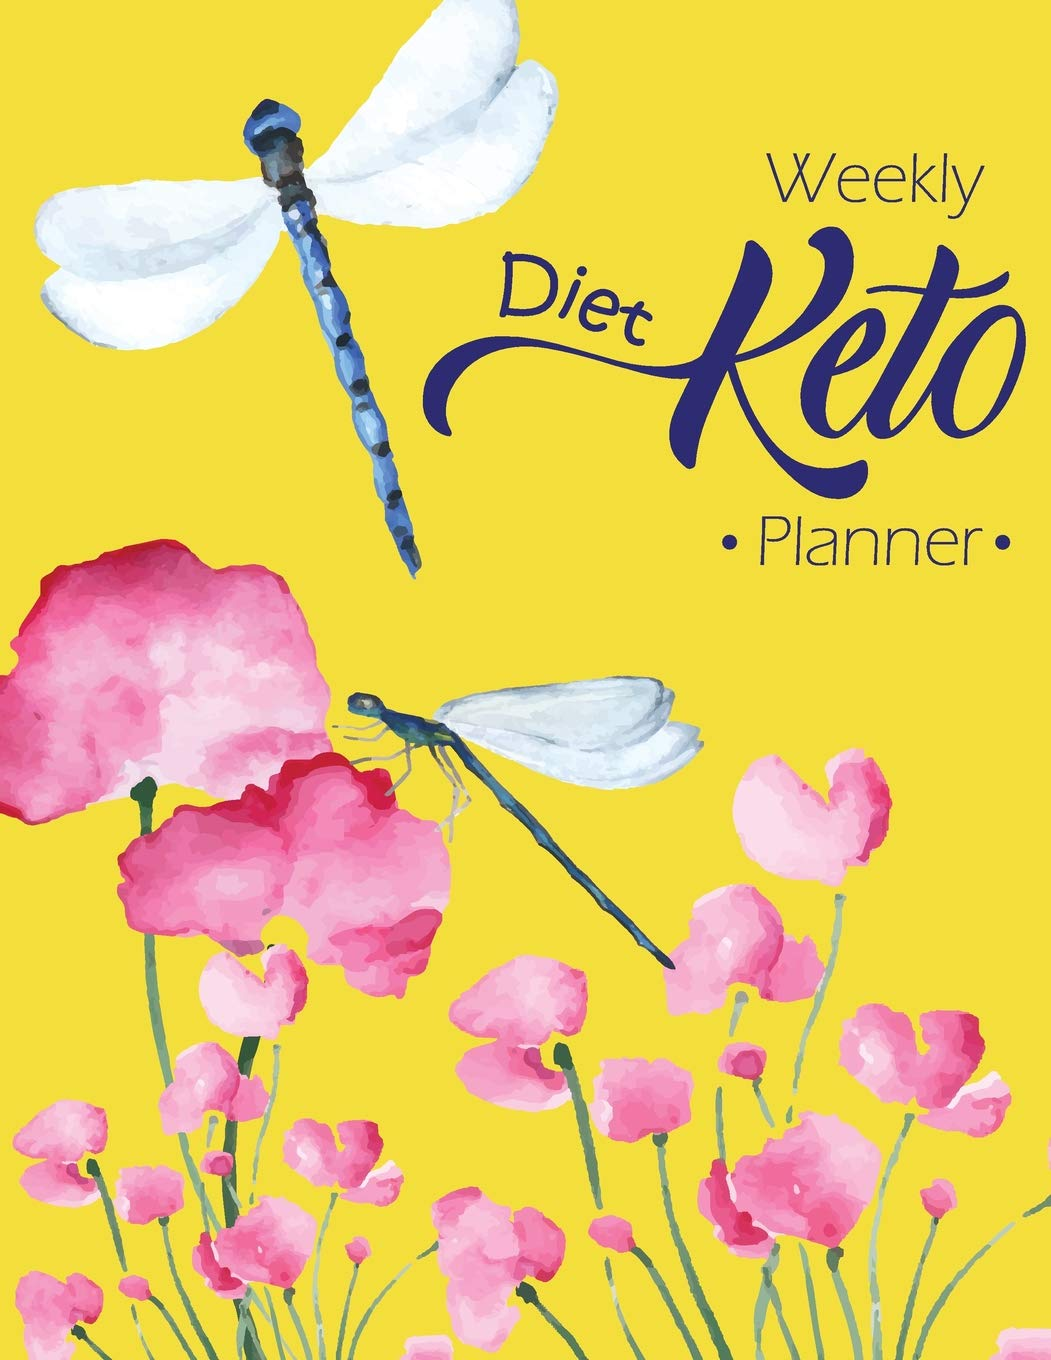 Weekly Keto Diet Planner Keto Meal Planner Diet Journal Weight Loss Exercise Planning Beginners Vegan Ketogenic Diary Low Salt Atkins Vegetarians Ketogenic Plan Notebook Autoimmune Dummies Low Carb Colony Mile 9781798717325 Books